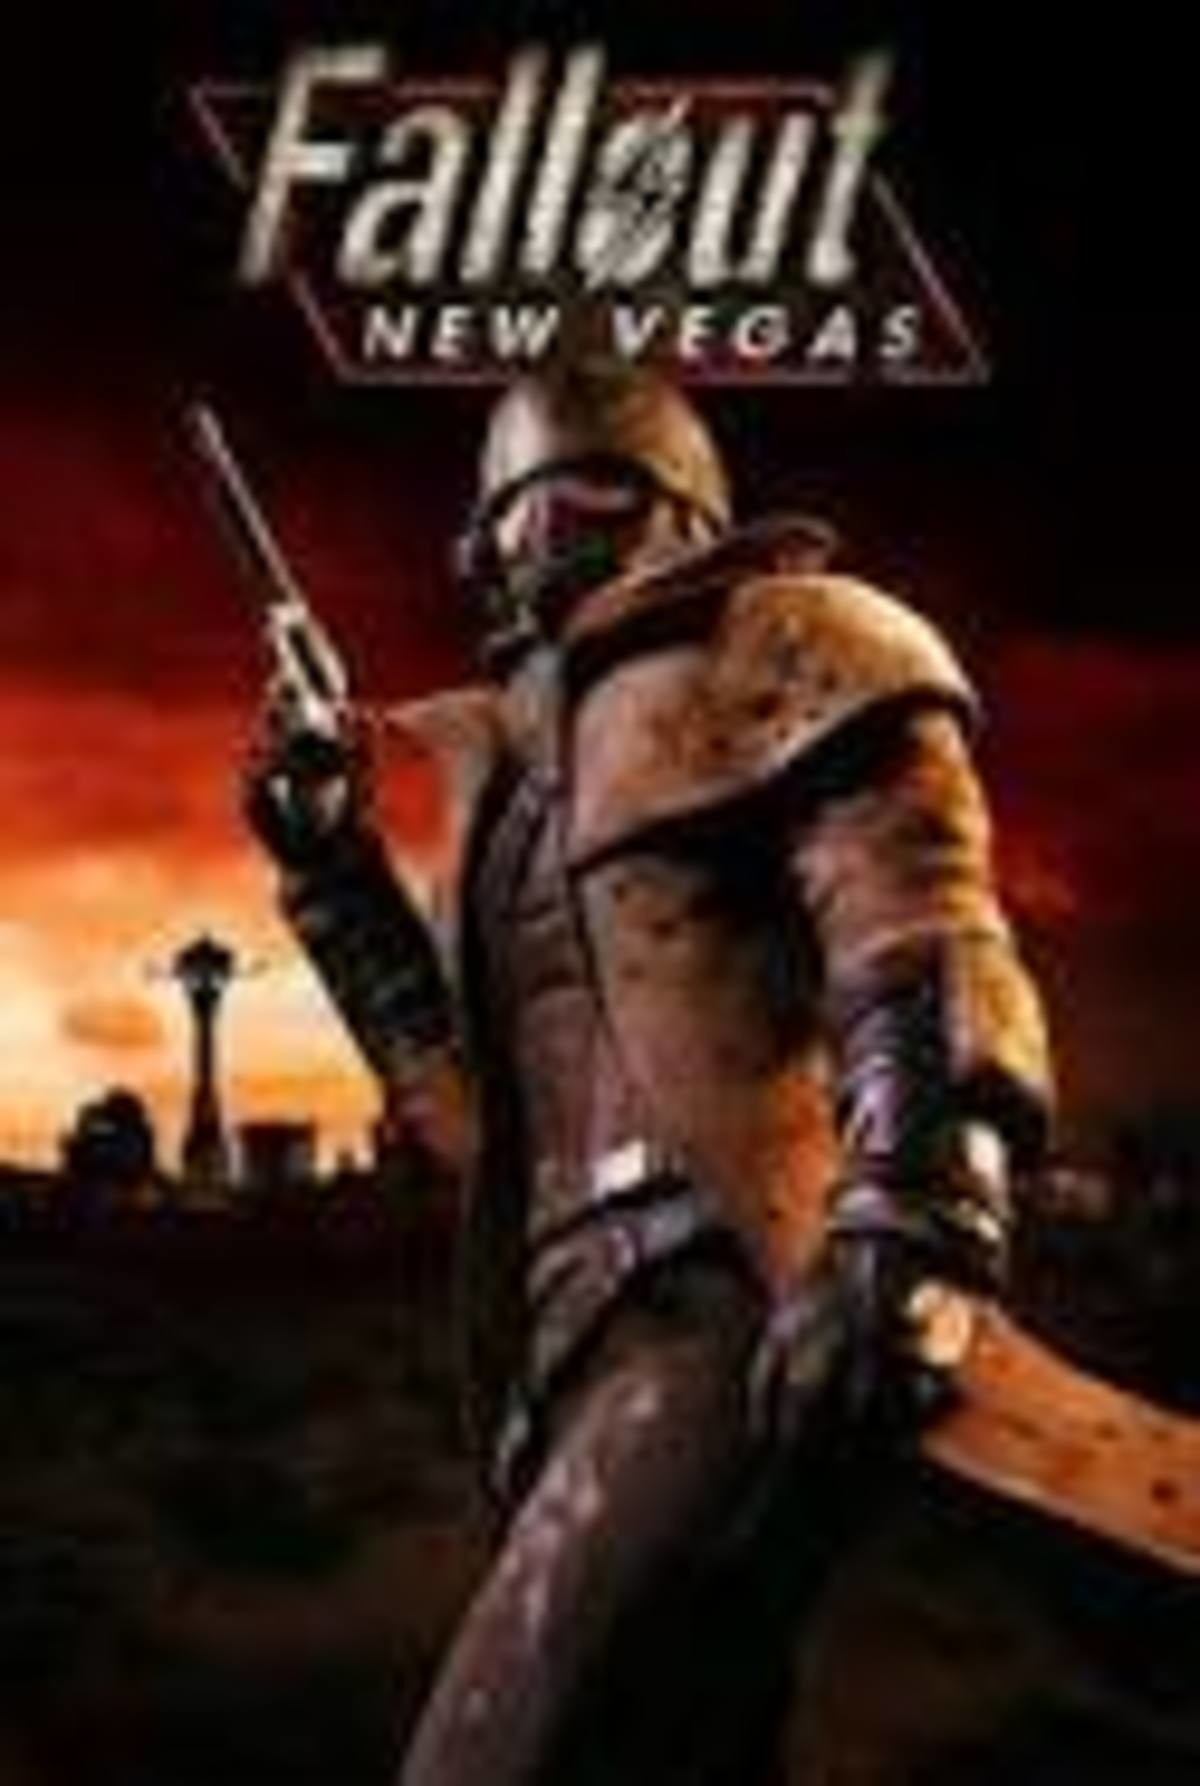 New Vegas, What routes are you going/have gone?. I've been playing a bit of fallout new vegas recently. I bought it last year on my birthday at a discounted pri